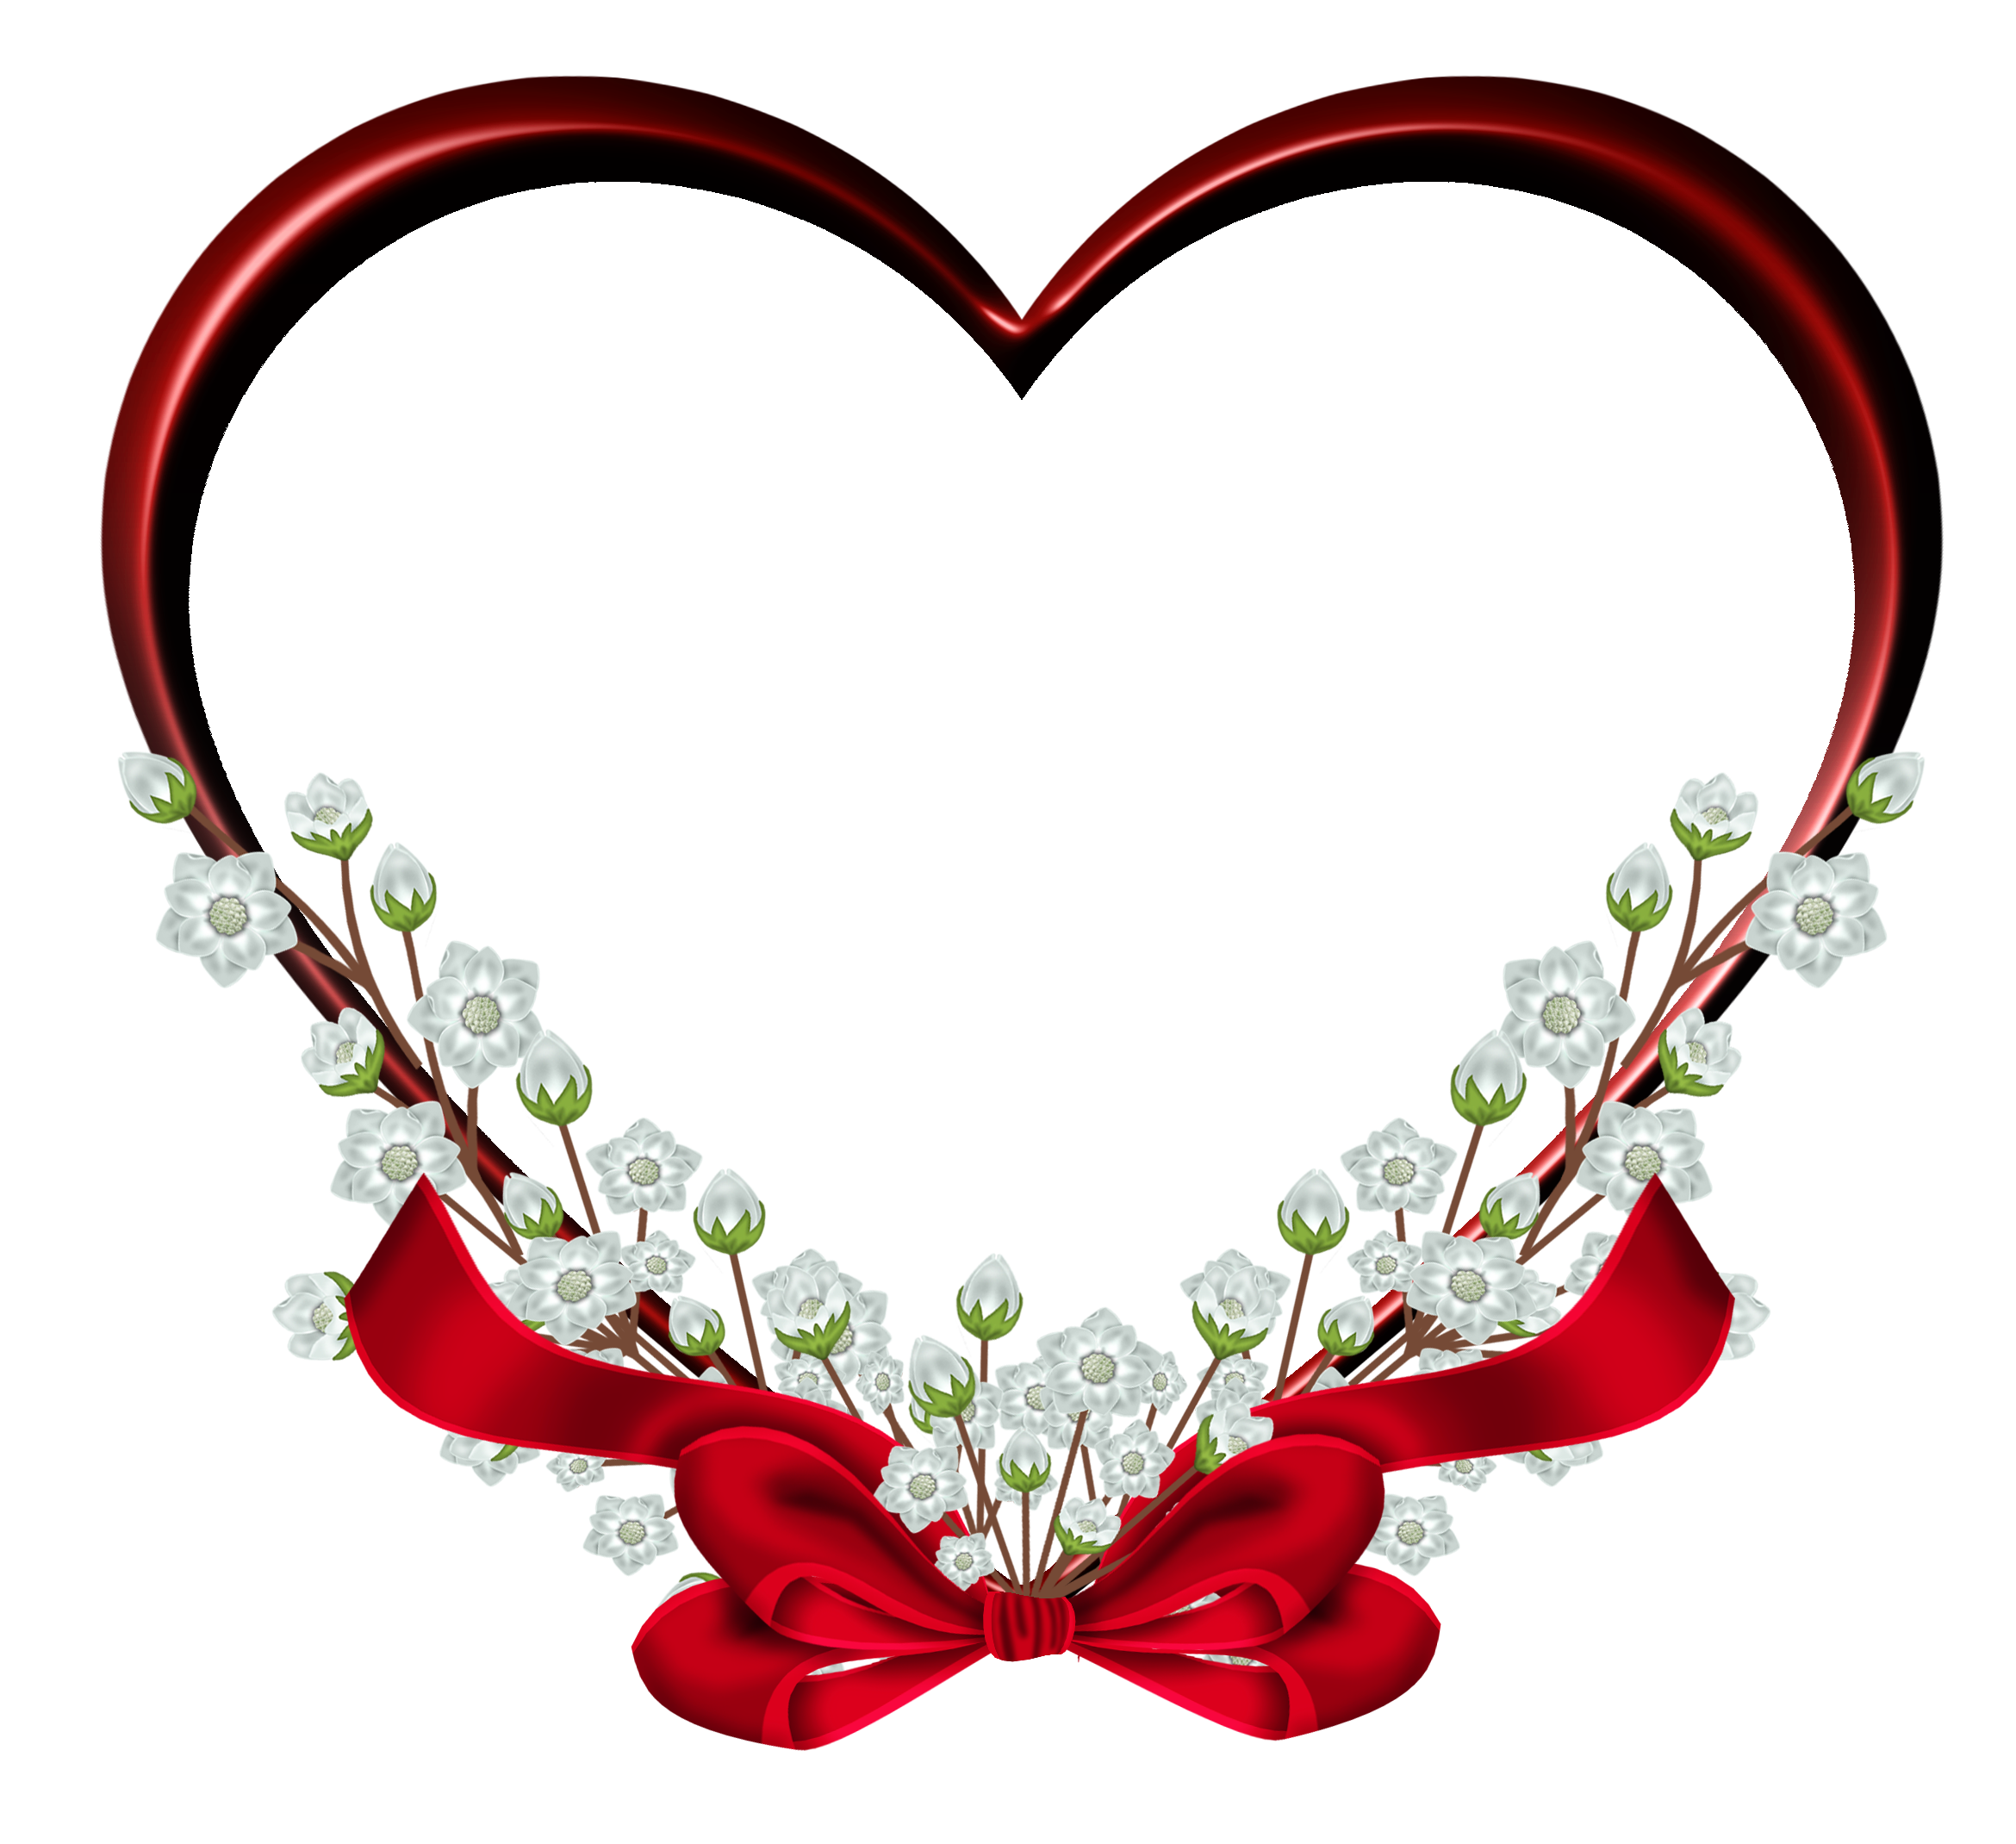 Transparent Red Heart Frame Decor PNG Clipart Gallery